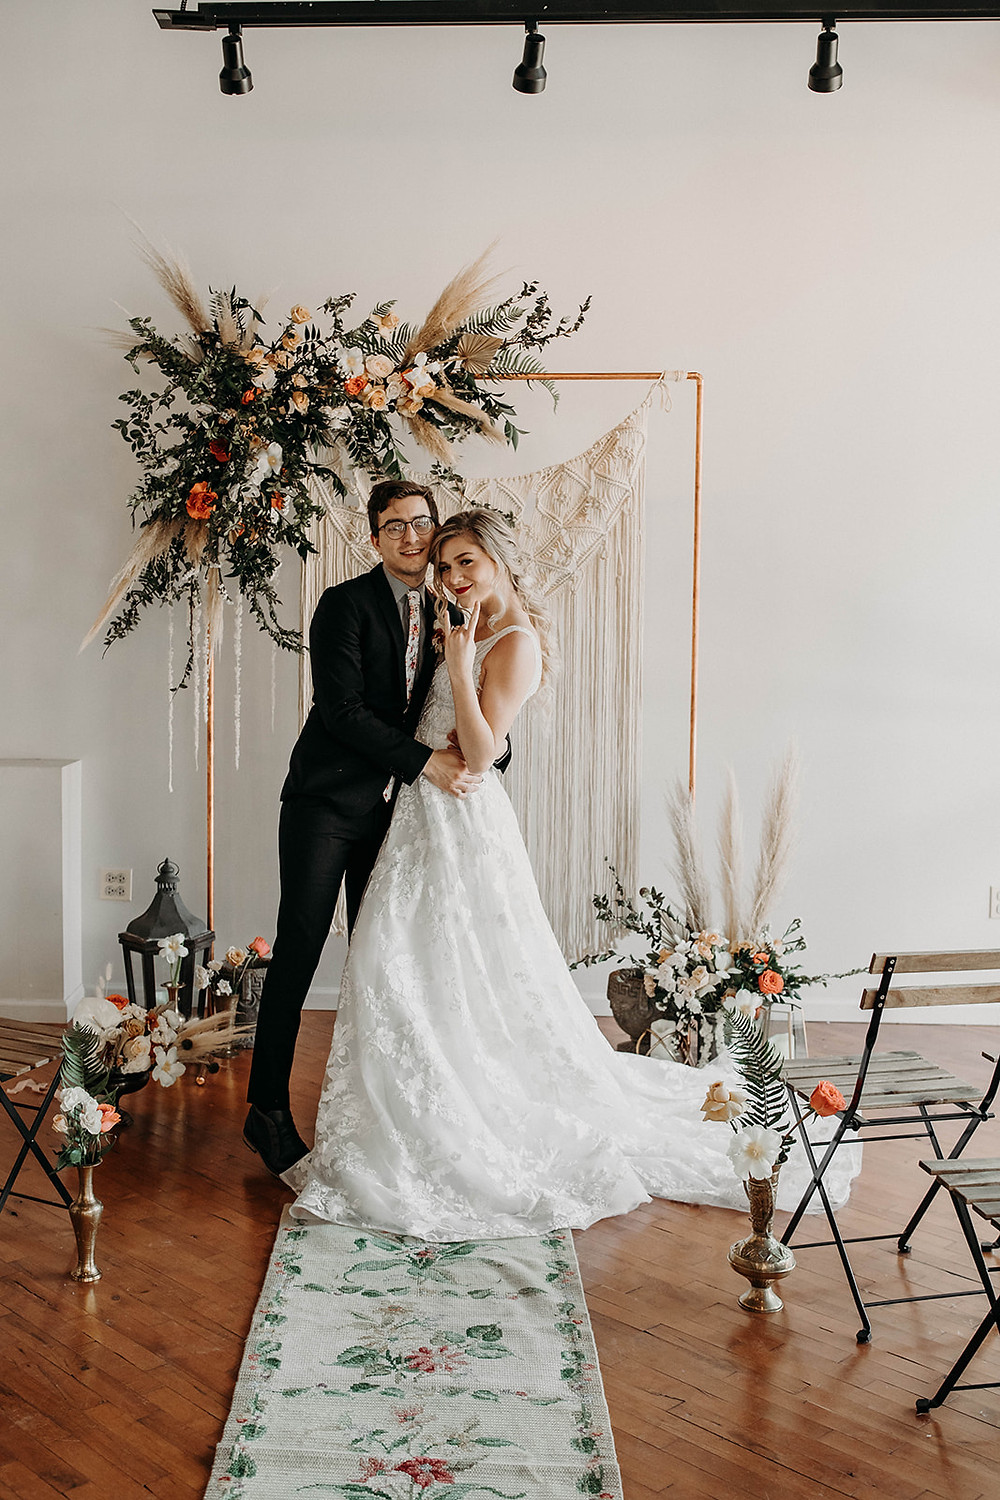 Bride and Groom pose at ceremony aisle with copper backdrop floral display behind them.